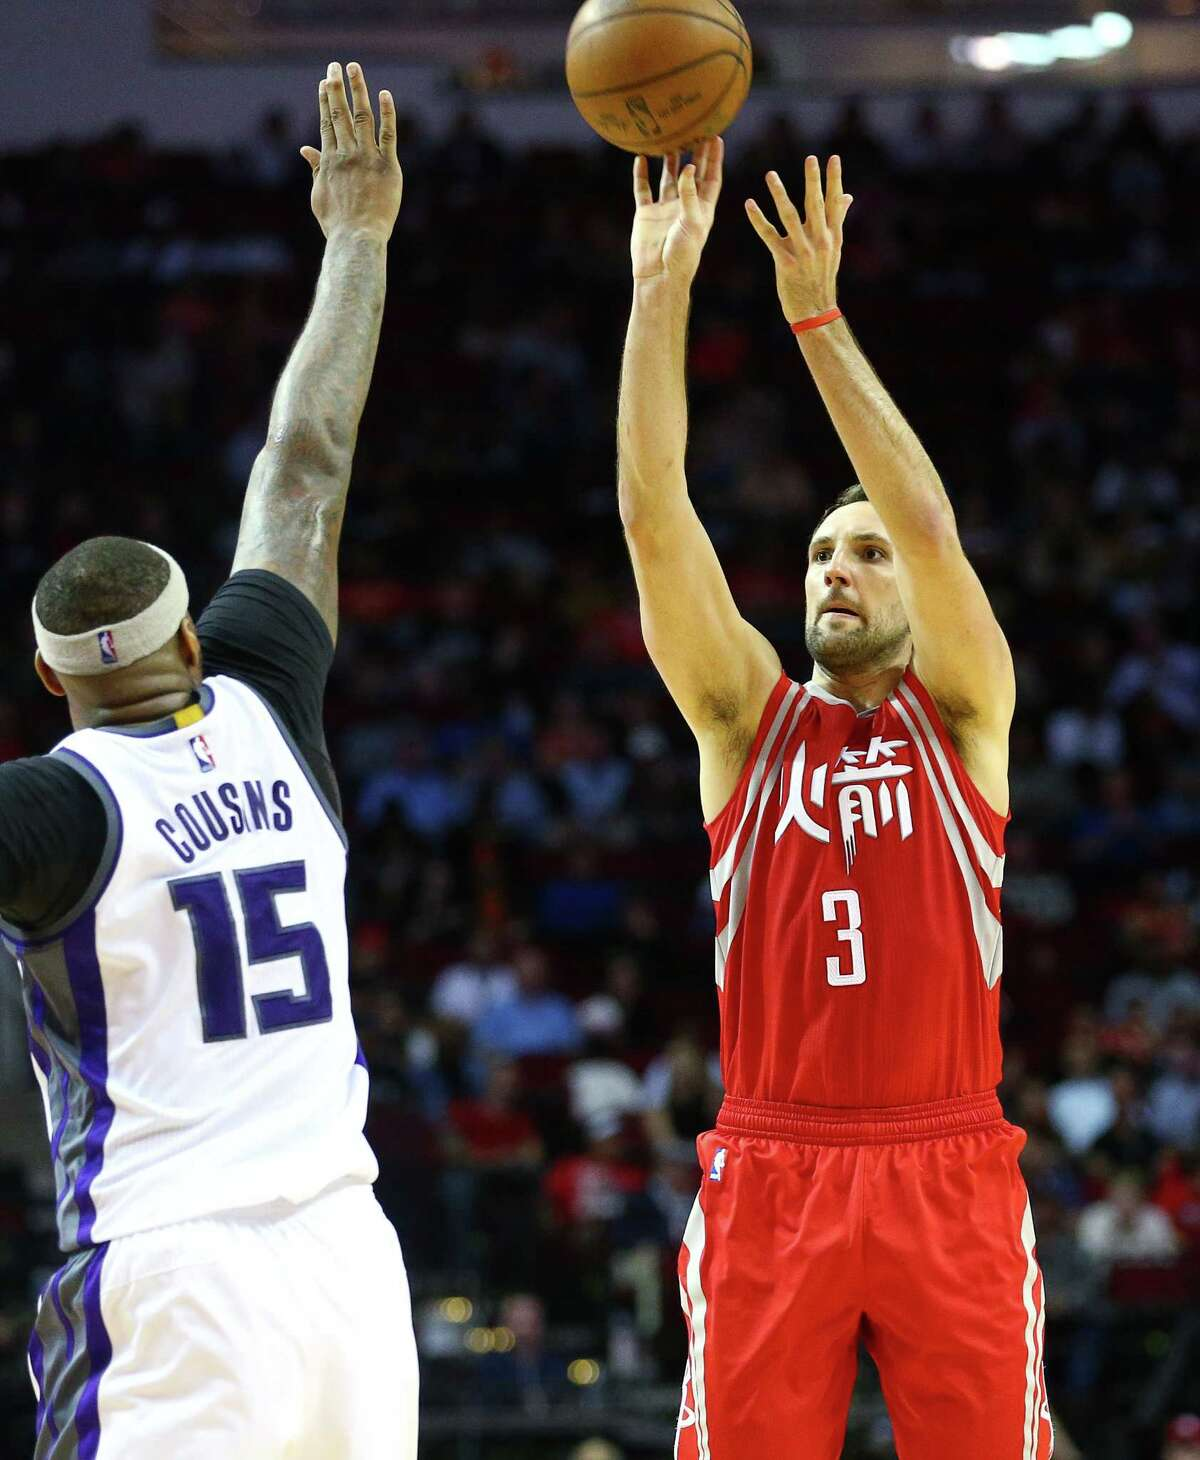 Forward Ryan Anderson, right, and the Rockets occasionally put up a midrange jumper, but coach Mike D'Antoni's offense dictates 3-pointers and layups are the preferred ways to riddle defenses. Midrange jumpers are not a lost art for the team, just a low priority for D'Antoni.